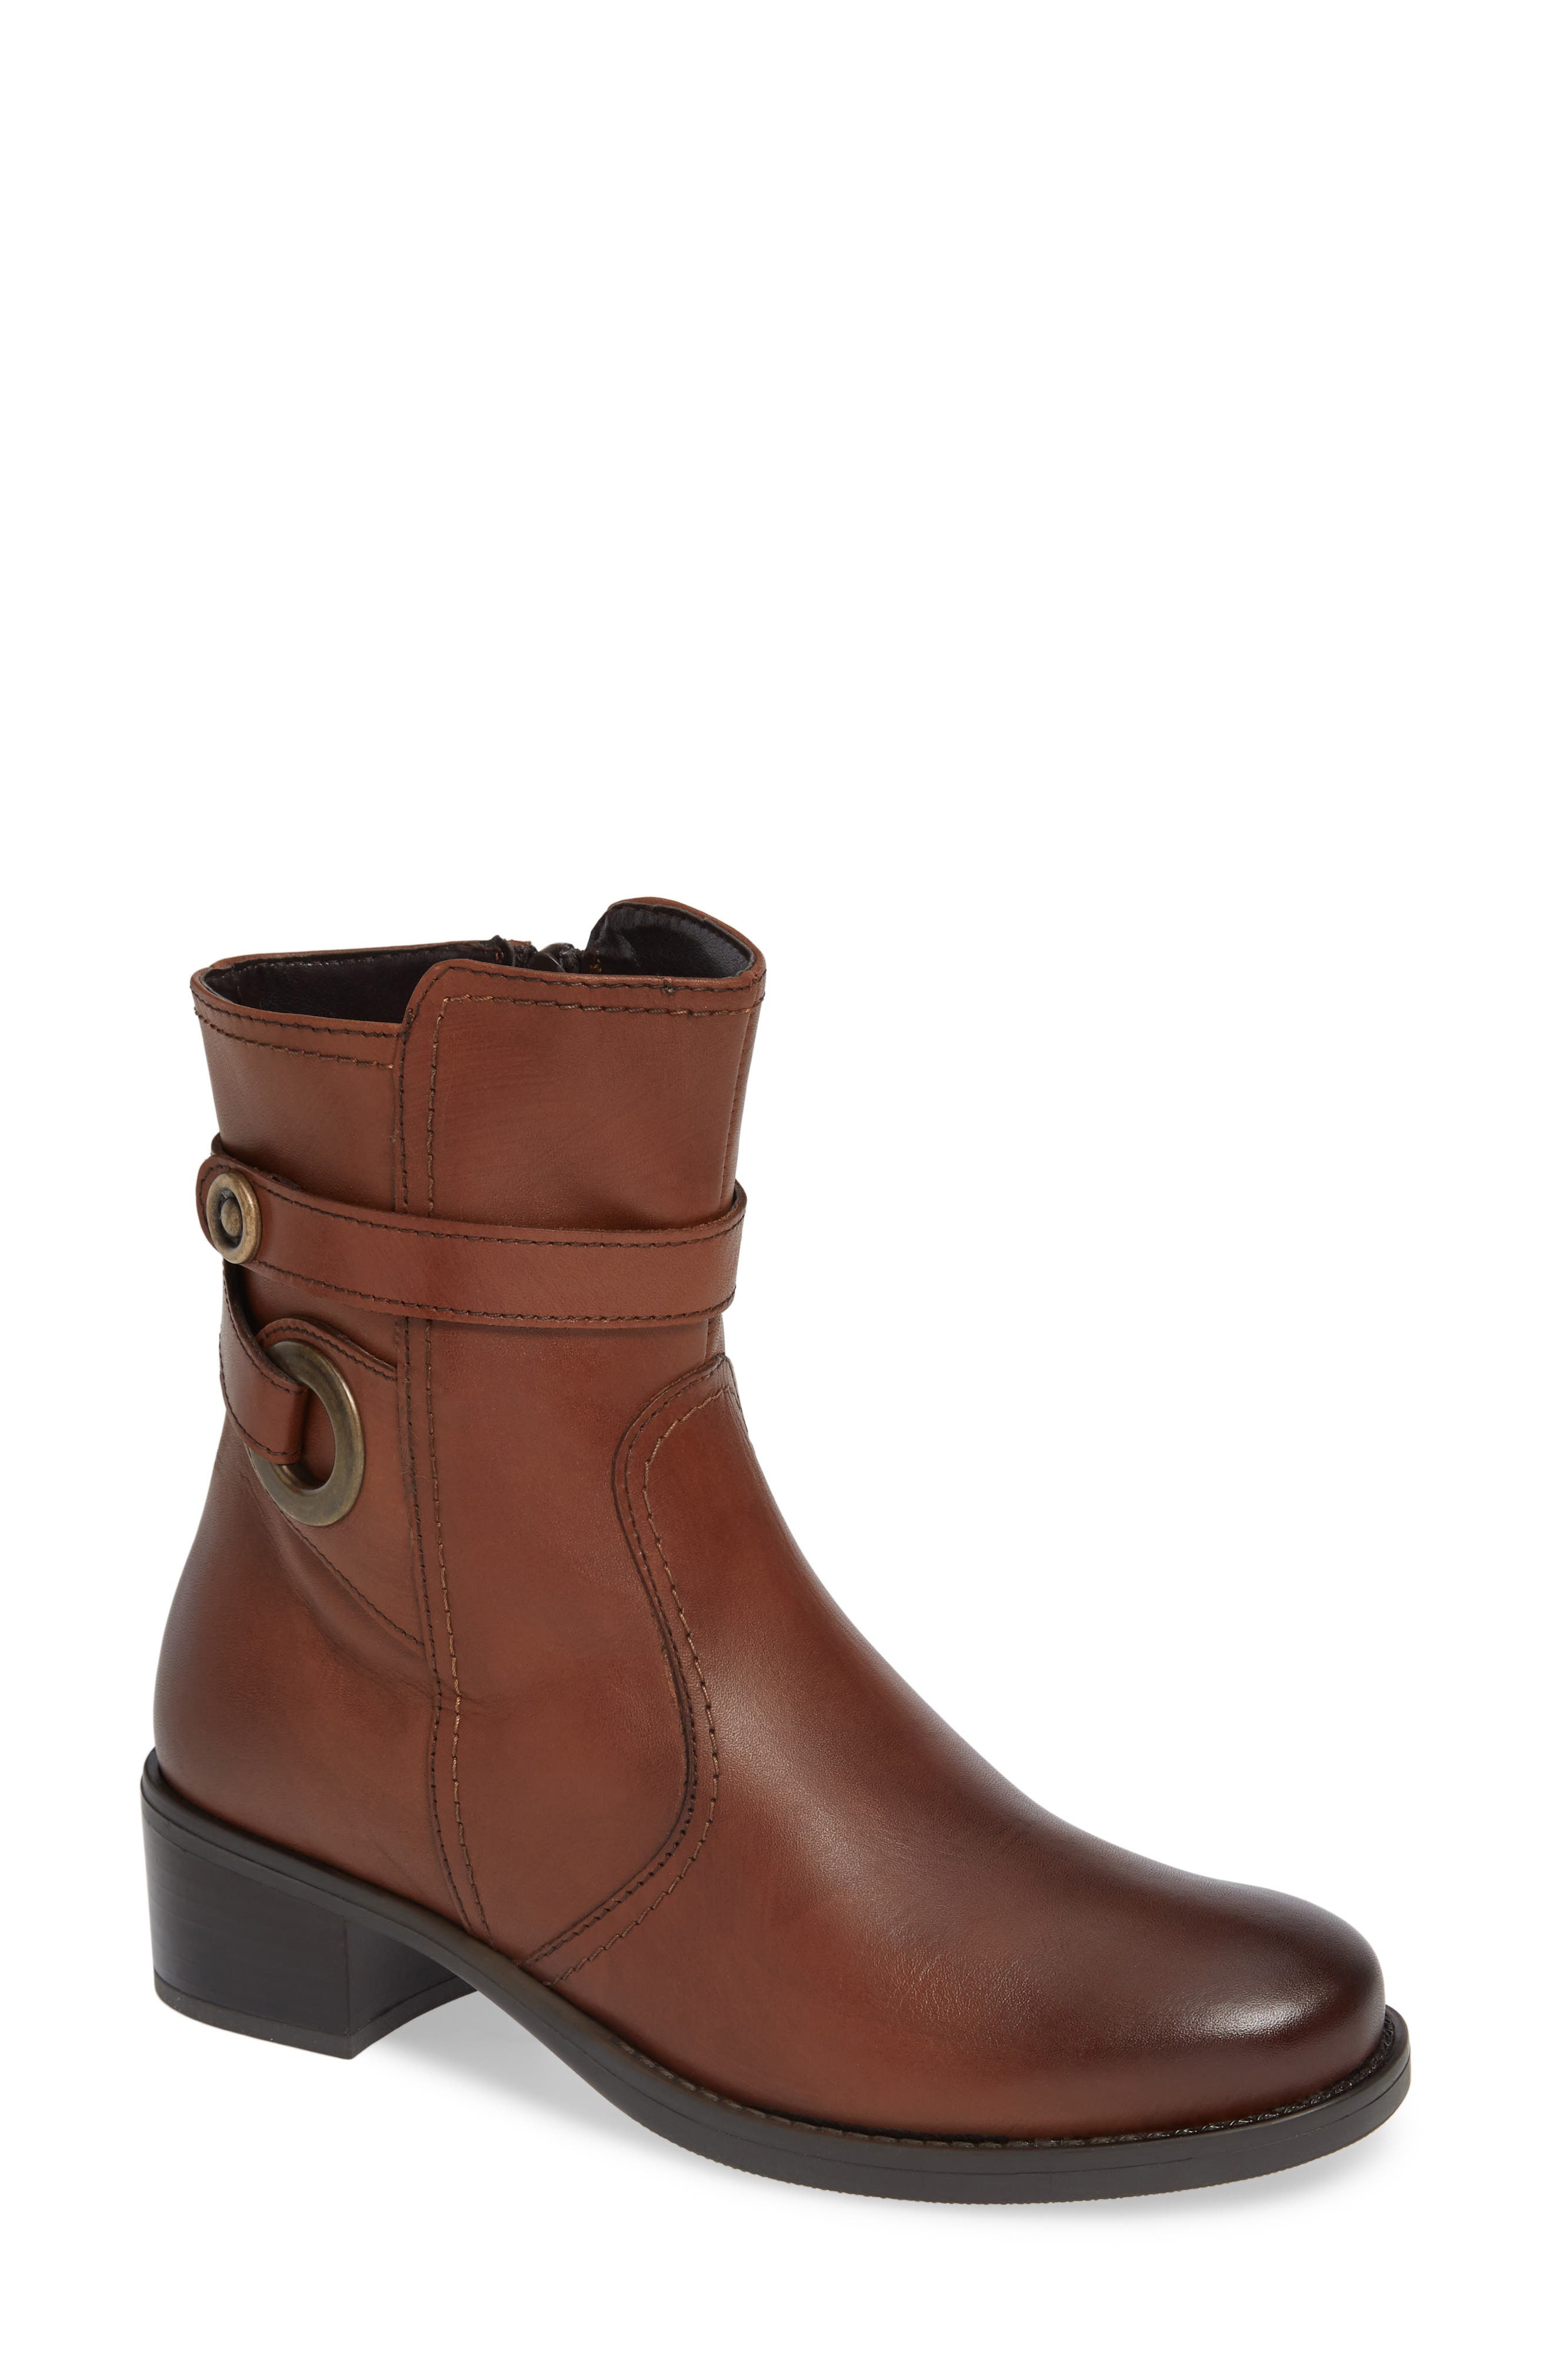 David Tate Java Bootie, Brown